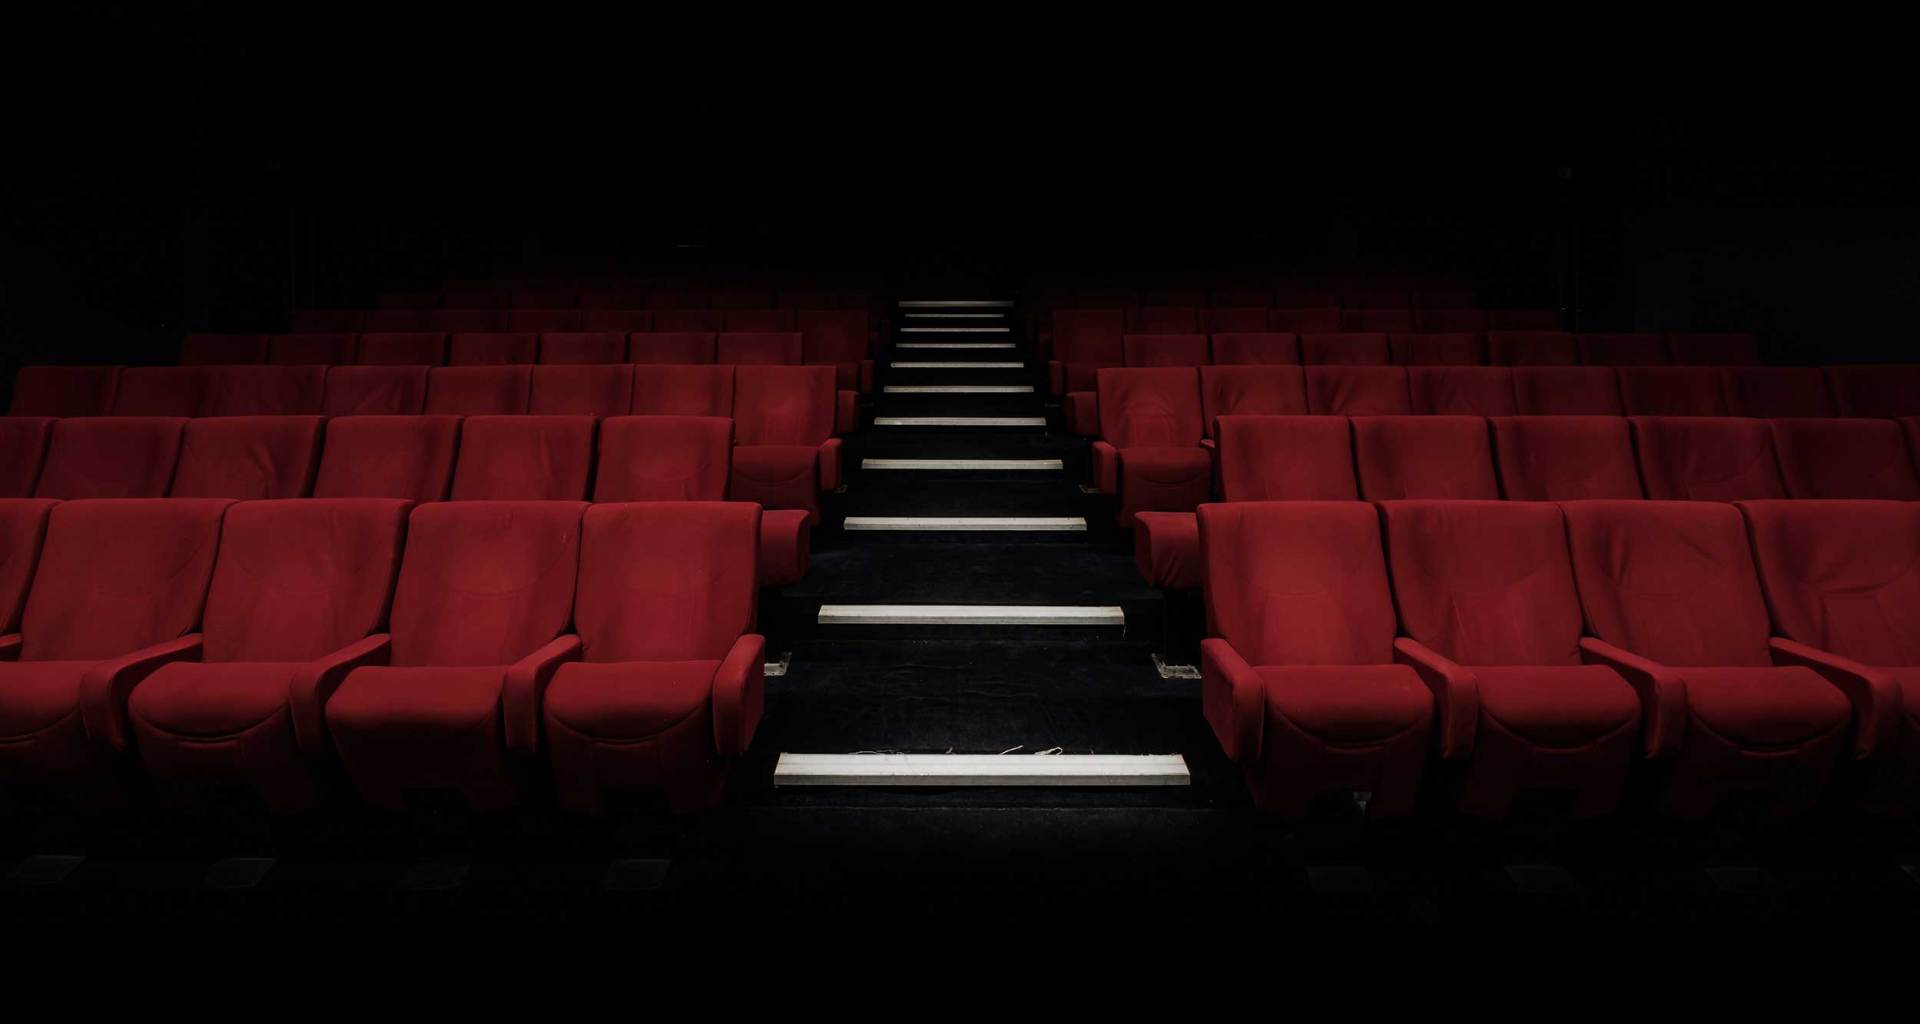 Seats in a darkened movie theater.